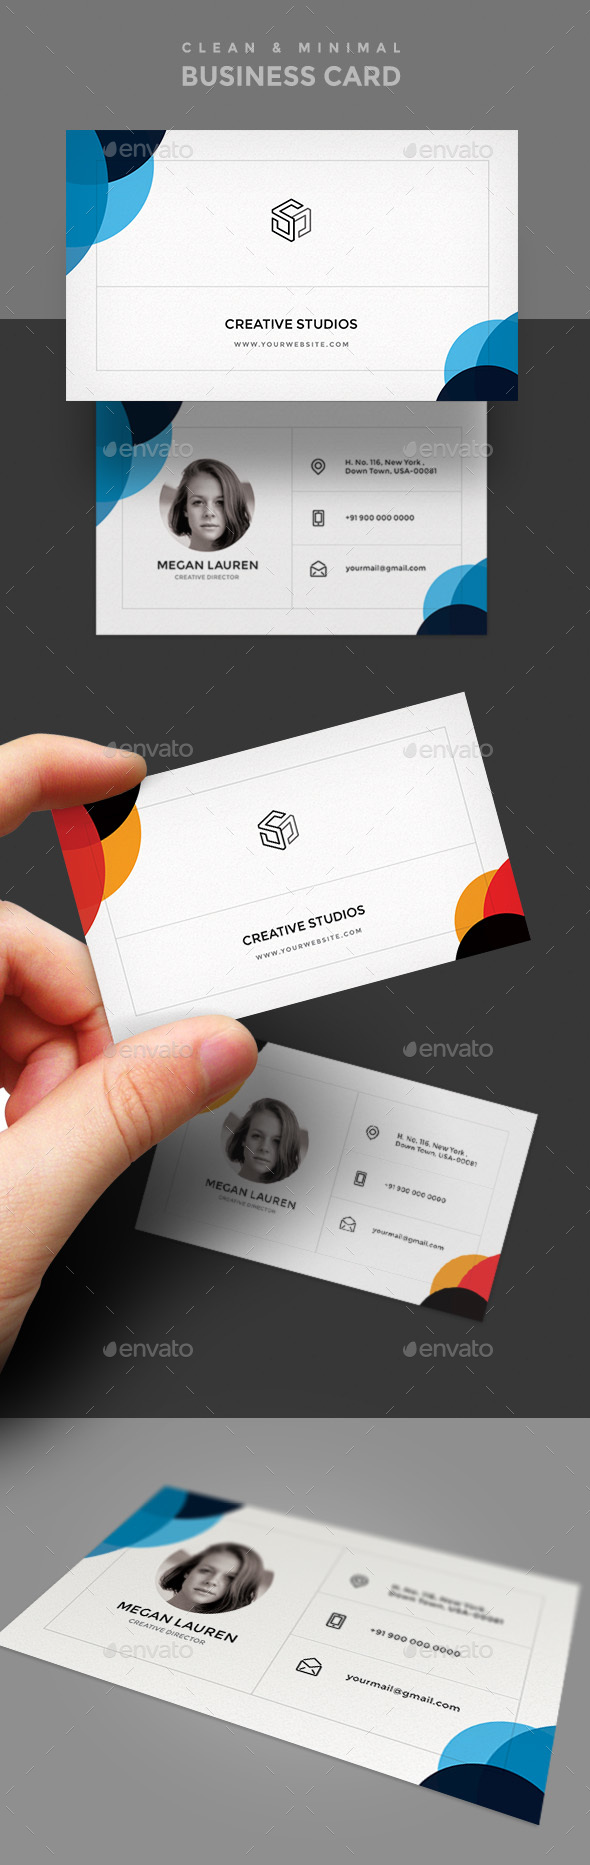 Business Card Template - Creative Business Cards